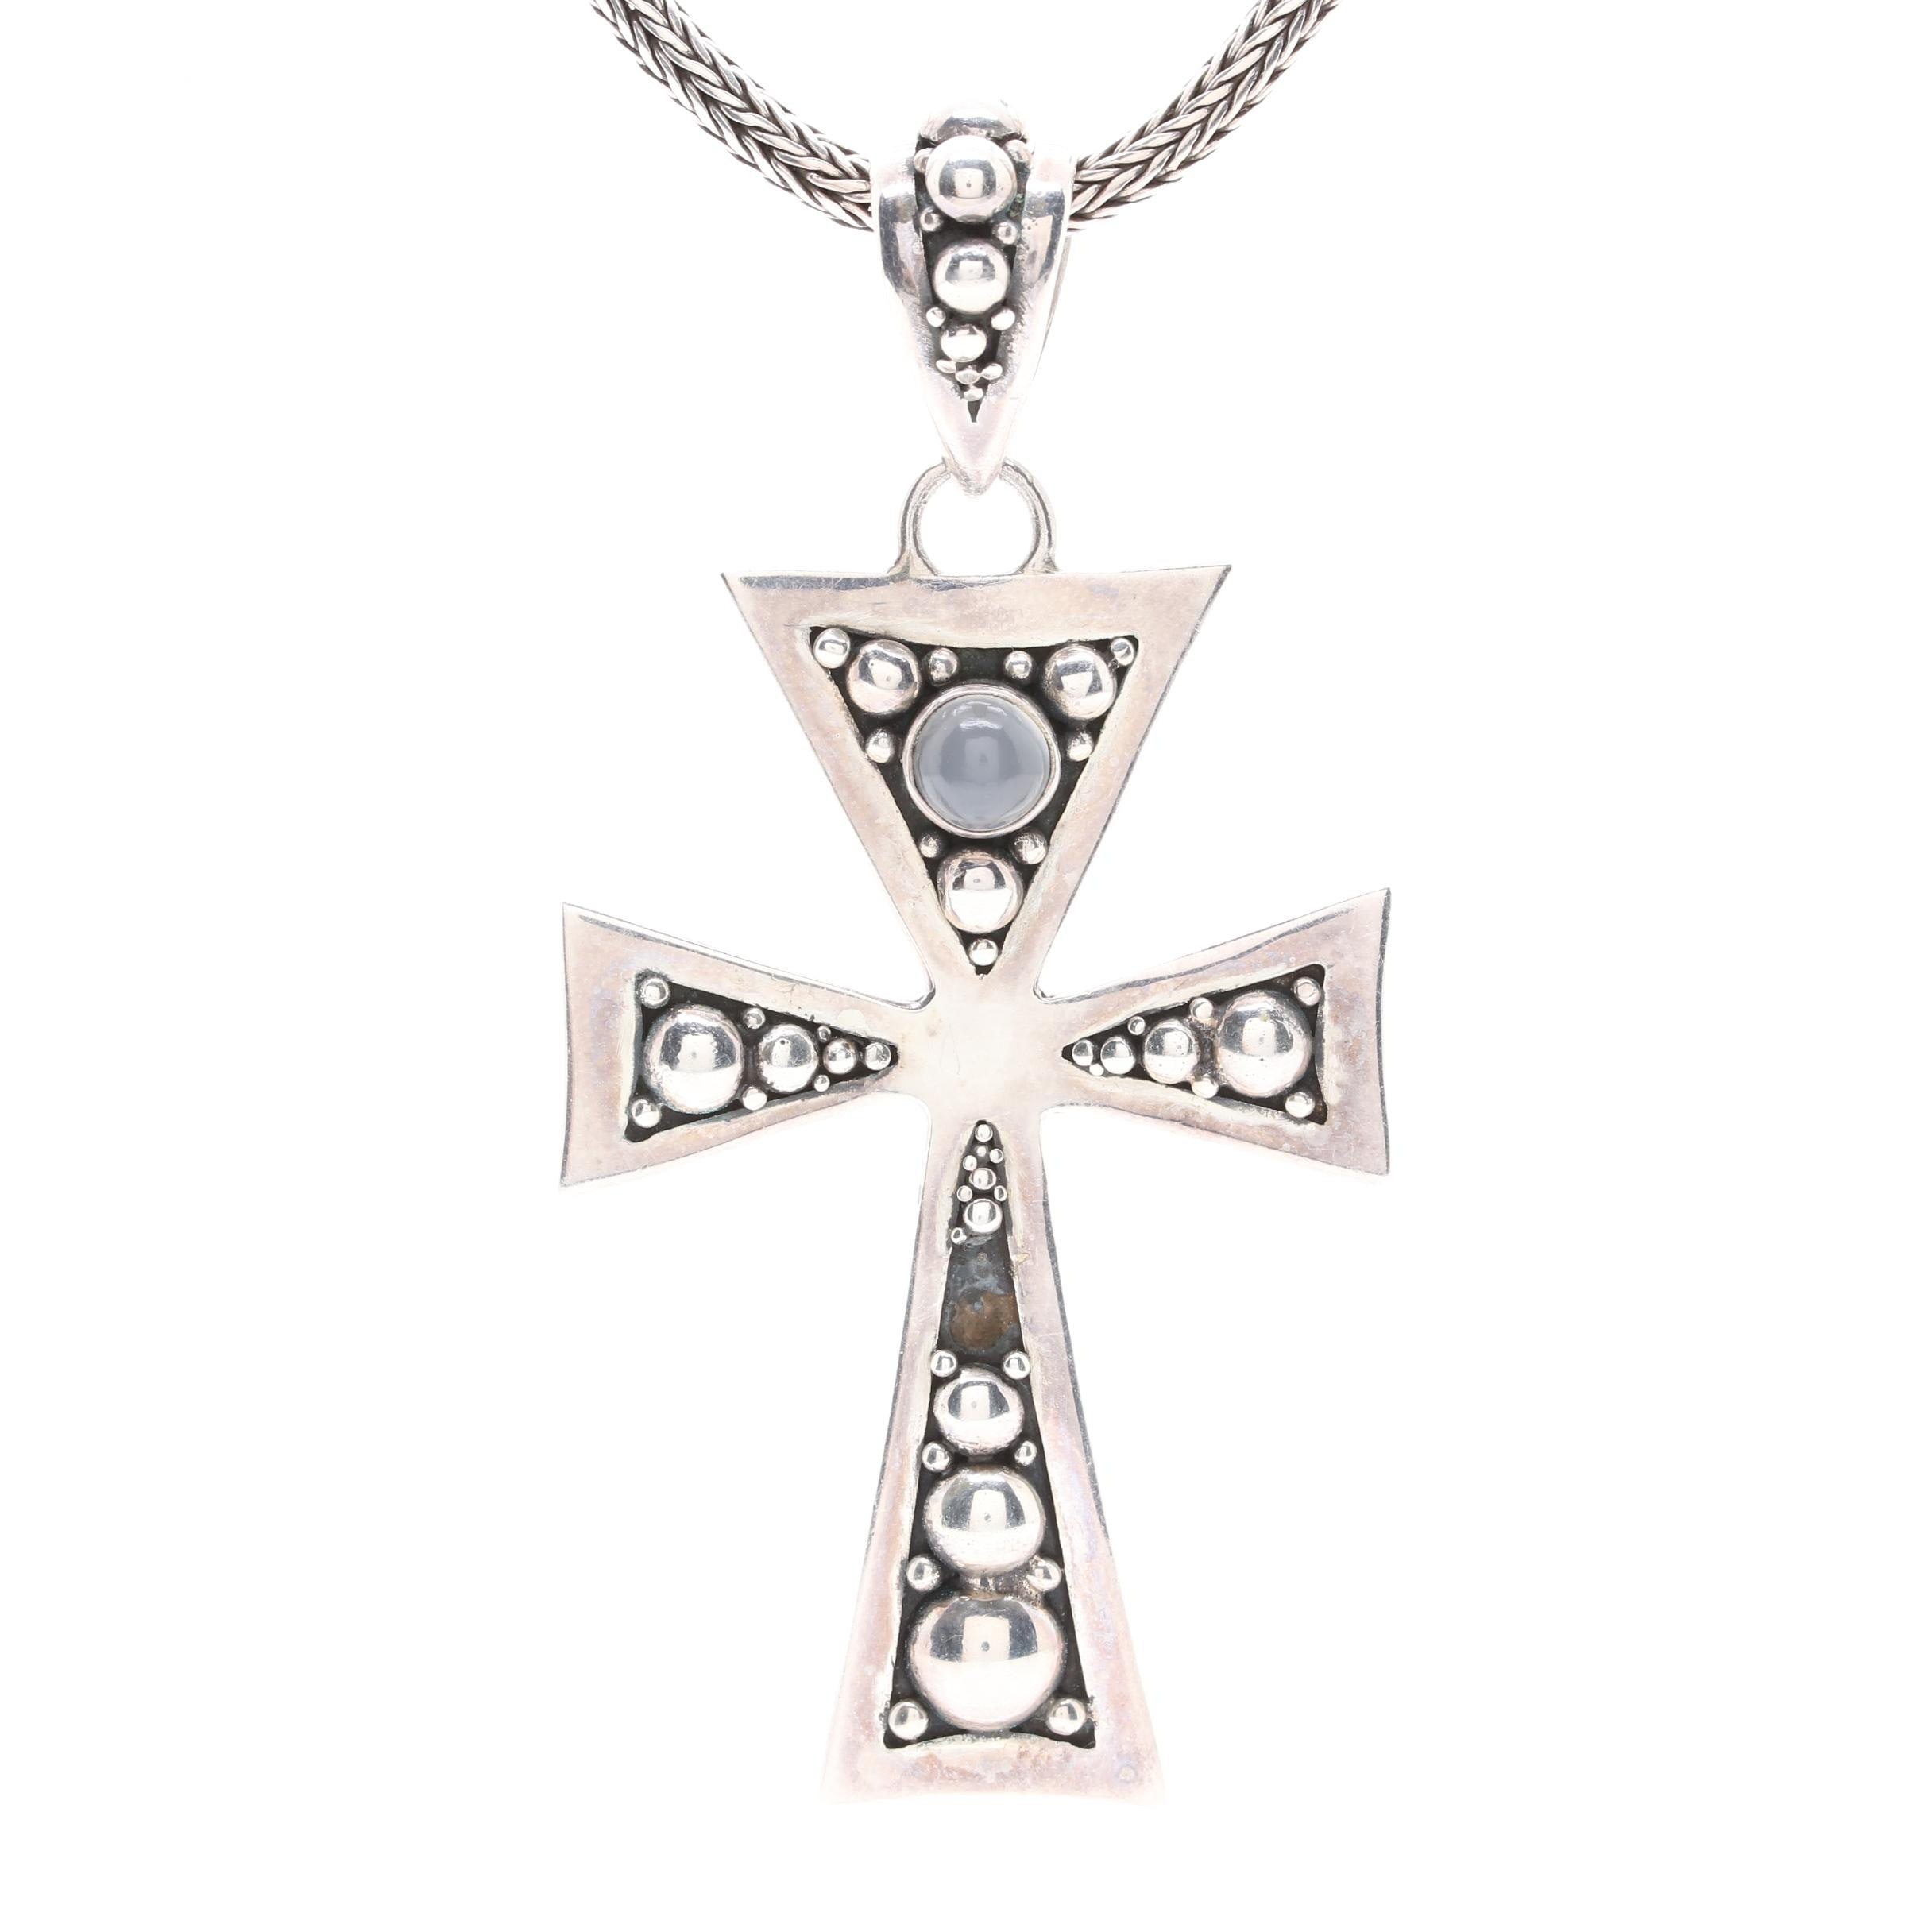 Suarti of Bali Sterling Silver Moonstone Cross Pendant Necklace